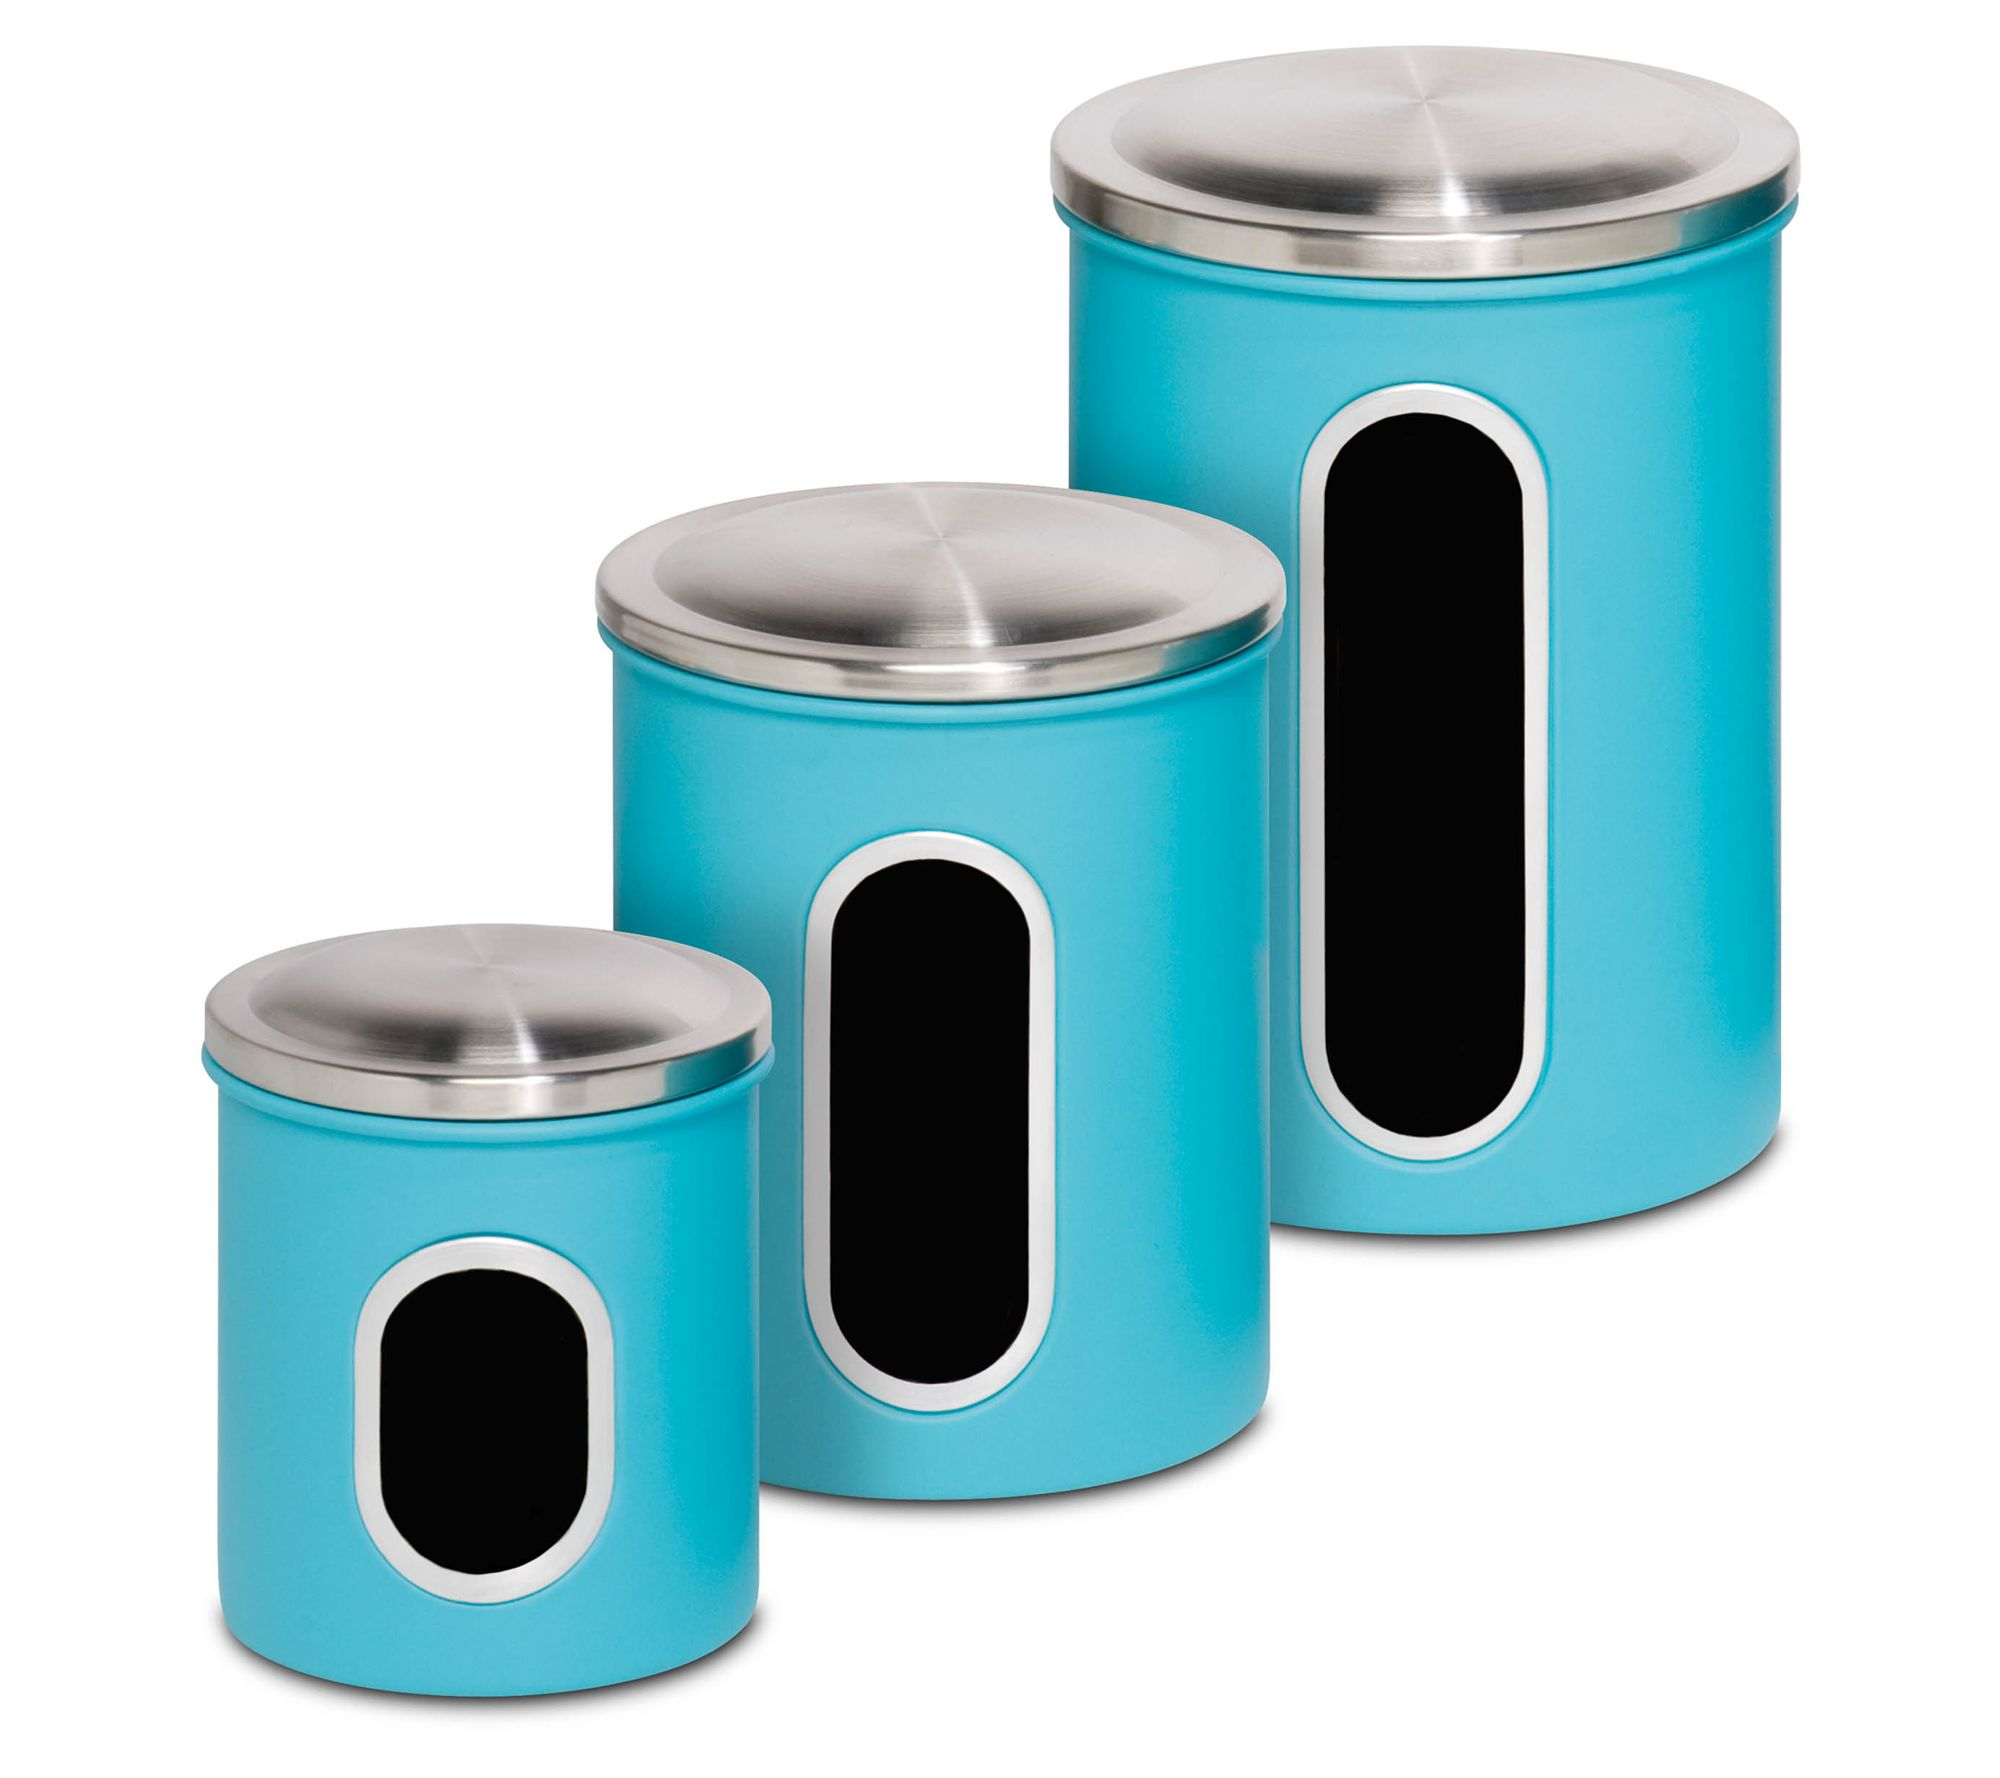 Honey-Can-Do Set of 3 Nested Kitchen Storage Canisters — QVC.com